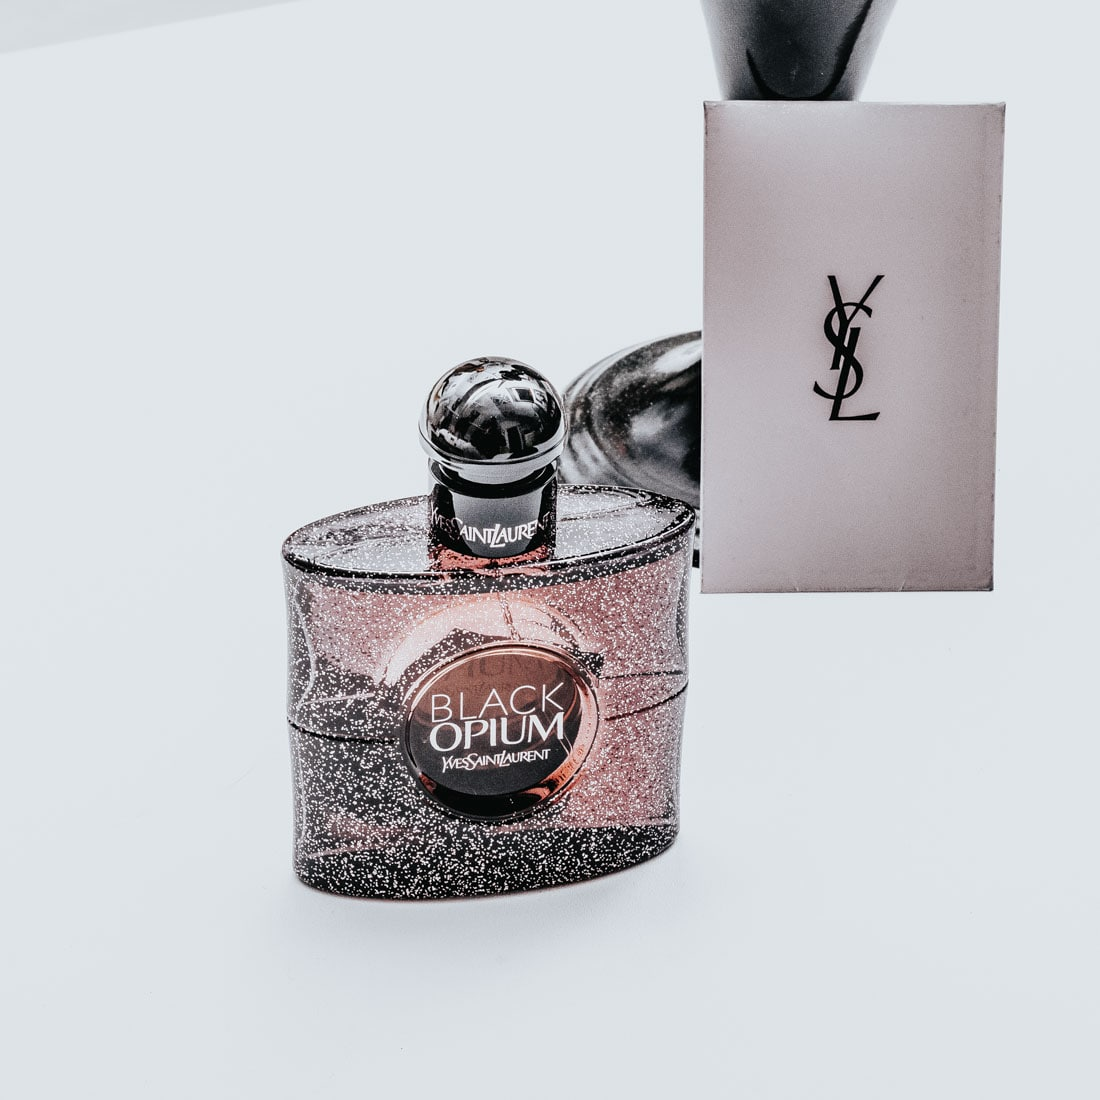 Black Opium, Yves Saint Laurent, parfum, avis